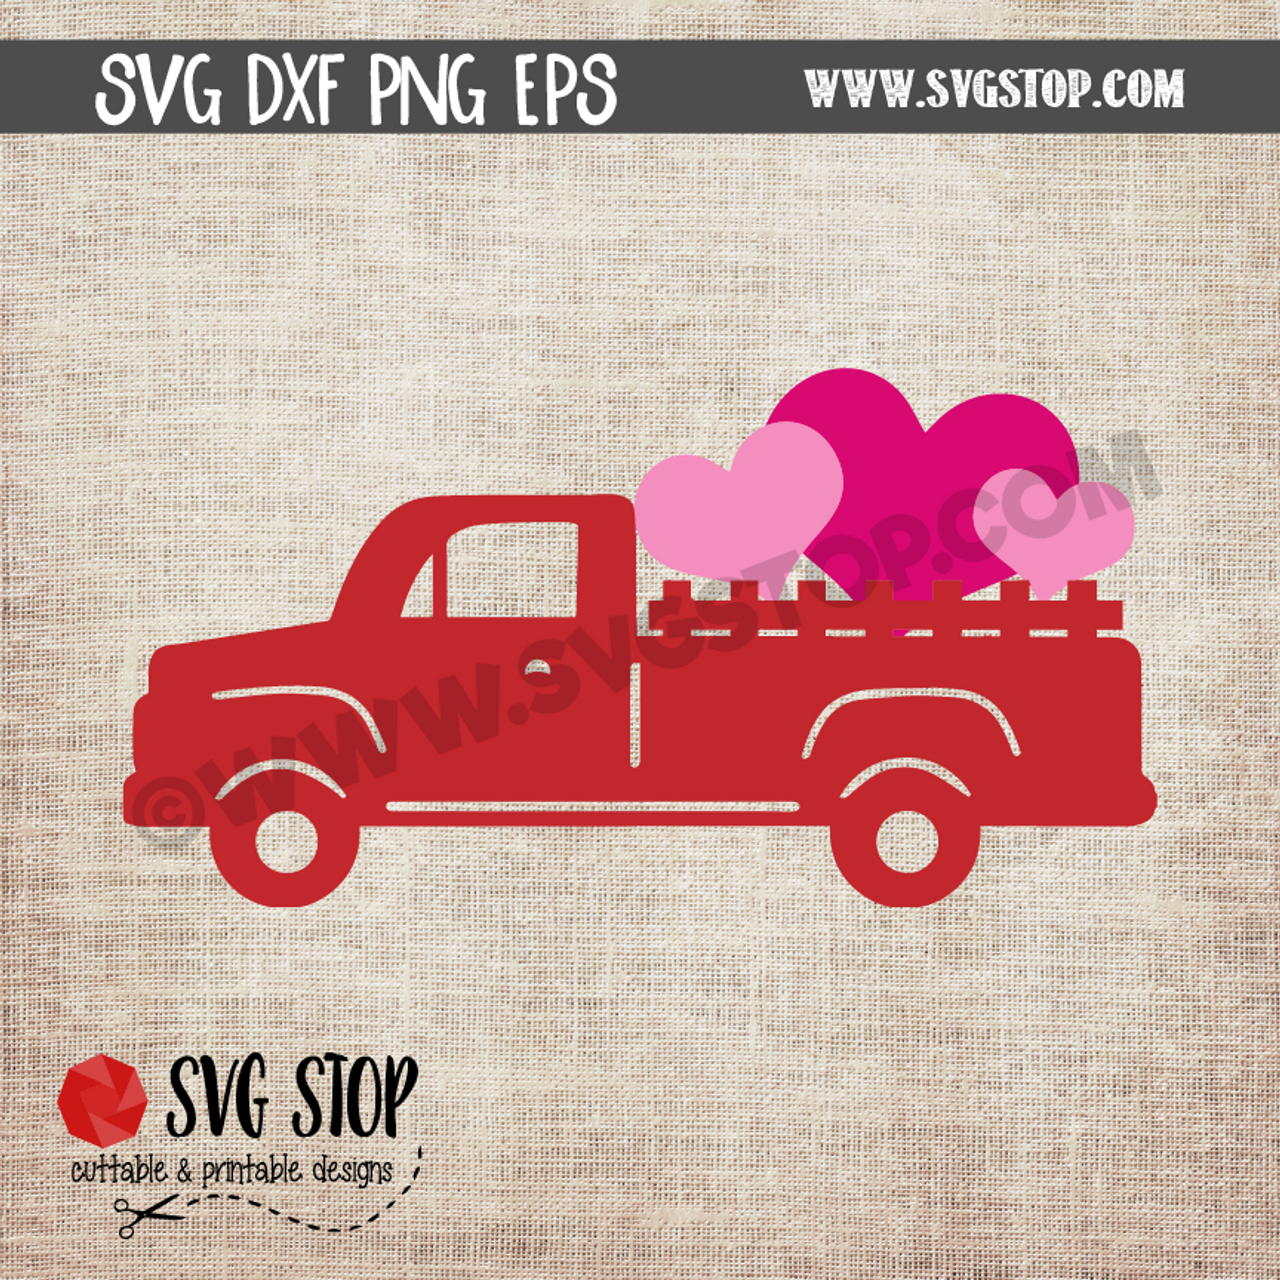 Valentine Vintage Truck With Hearts The Svg Stop Cuttable Printable Designs